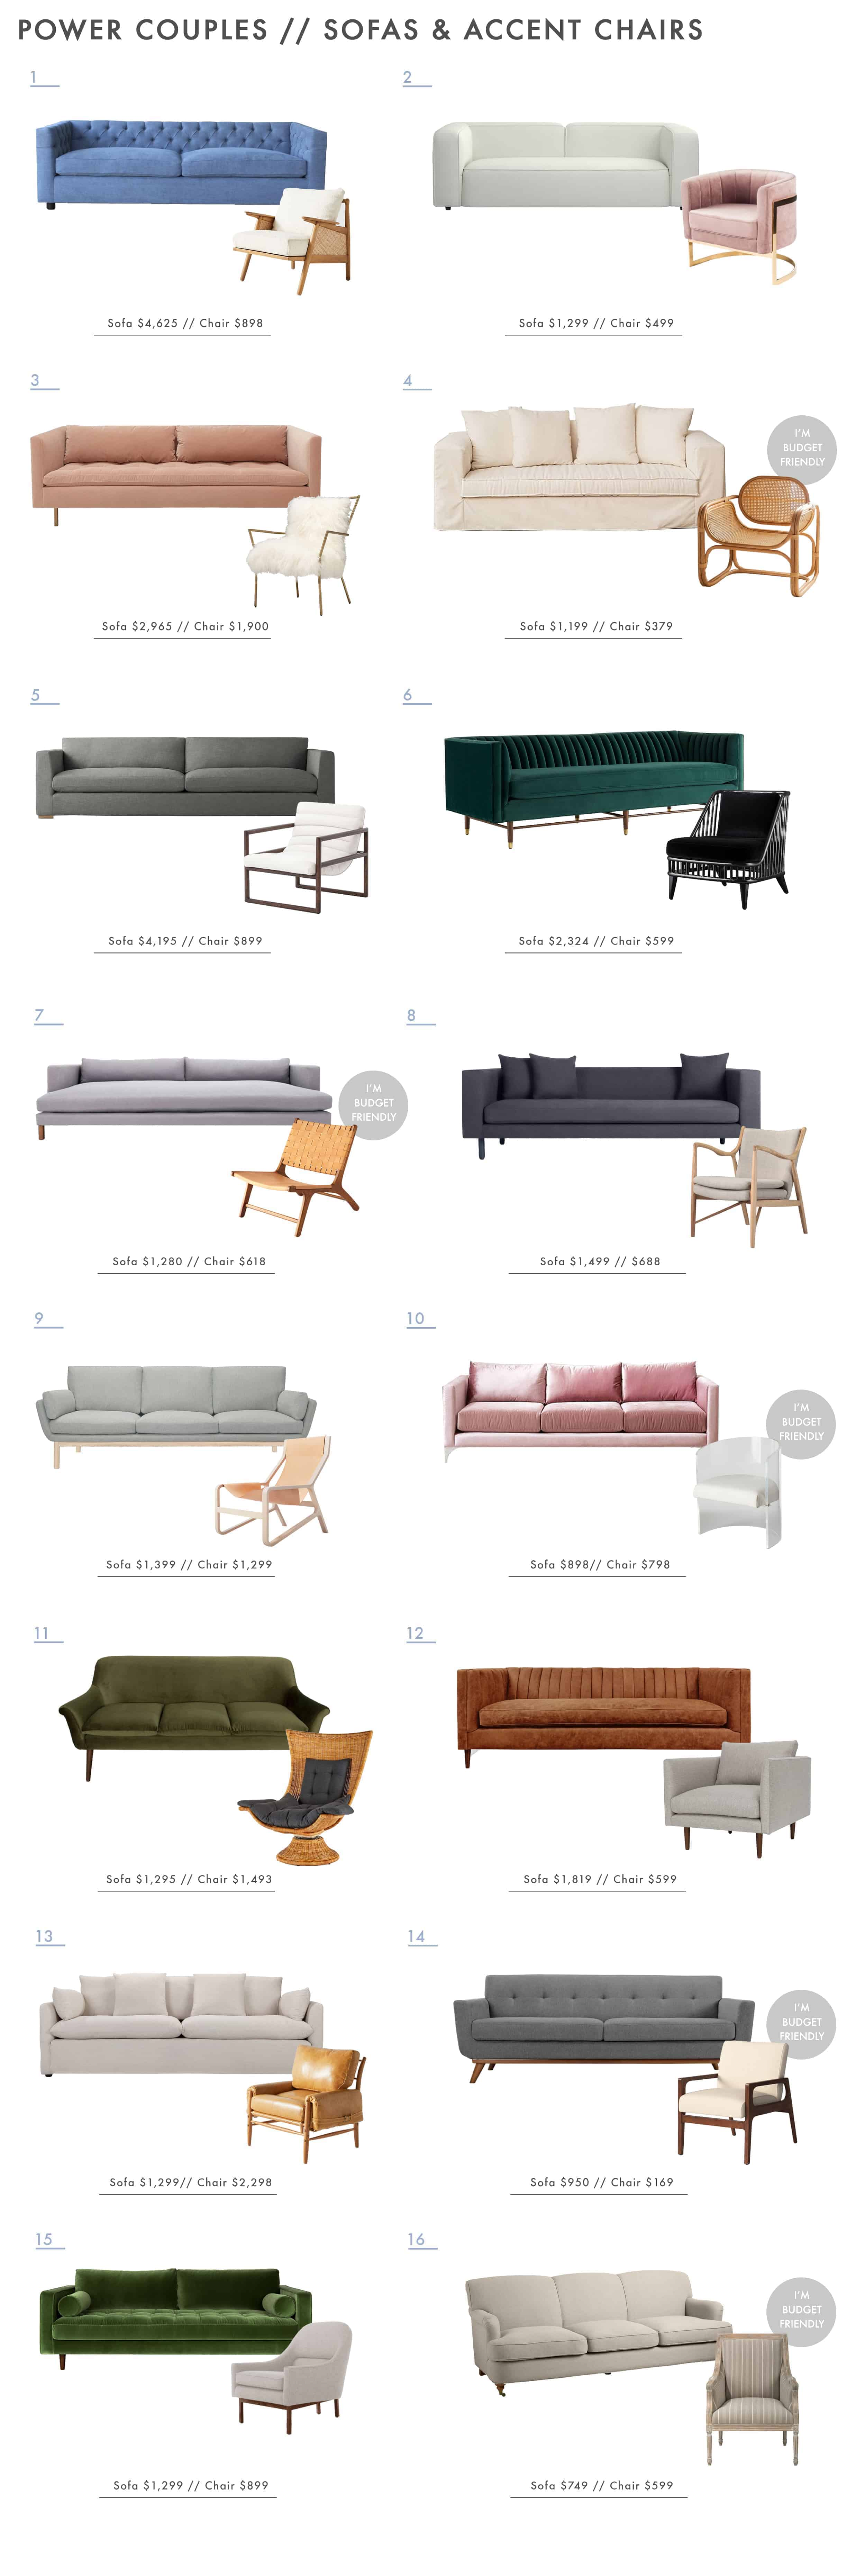 Couches And Accent Chairs2